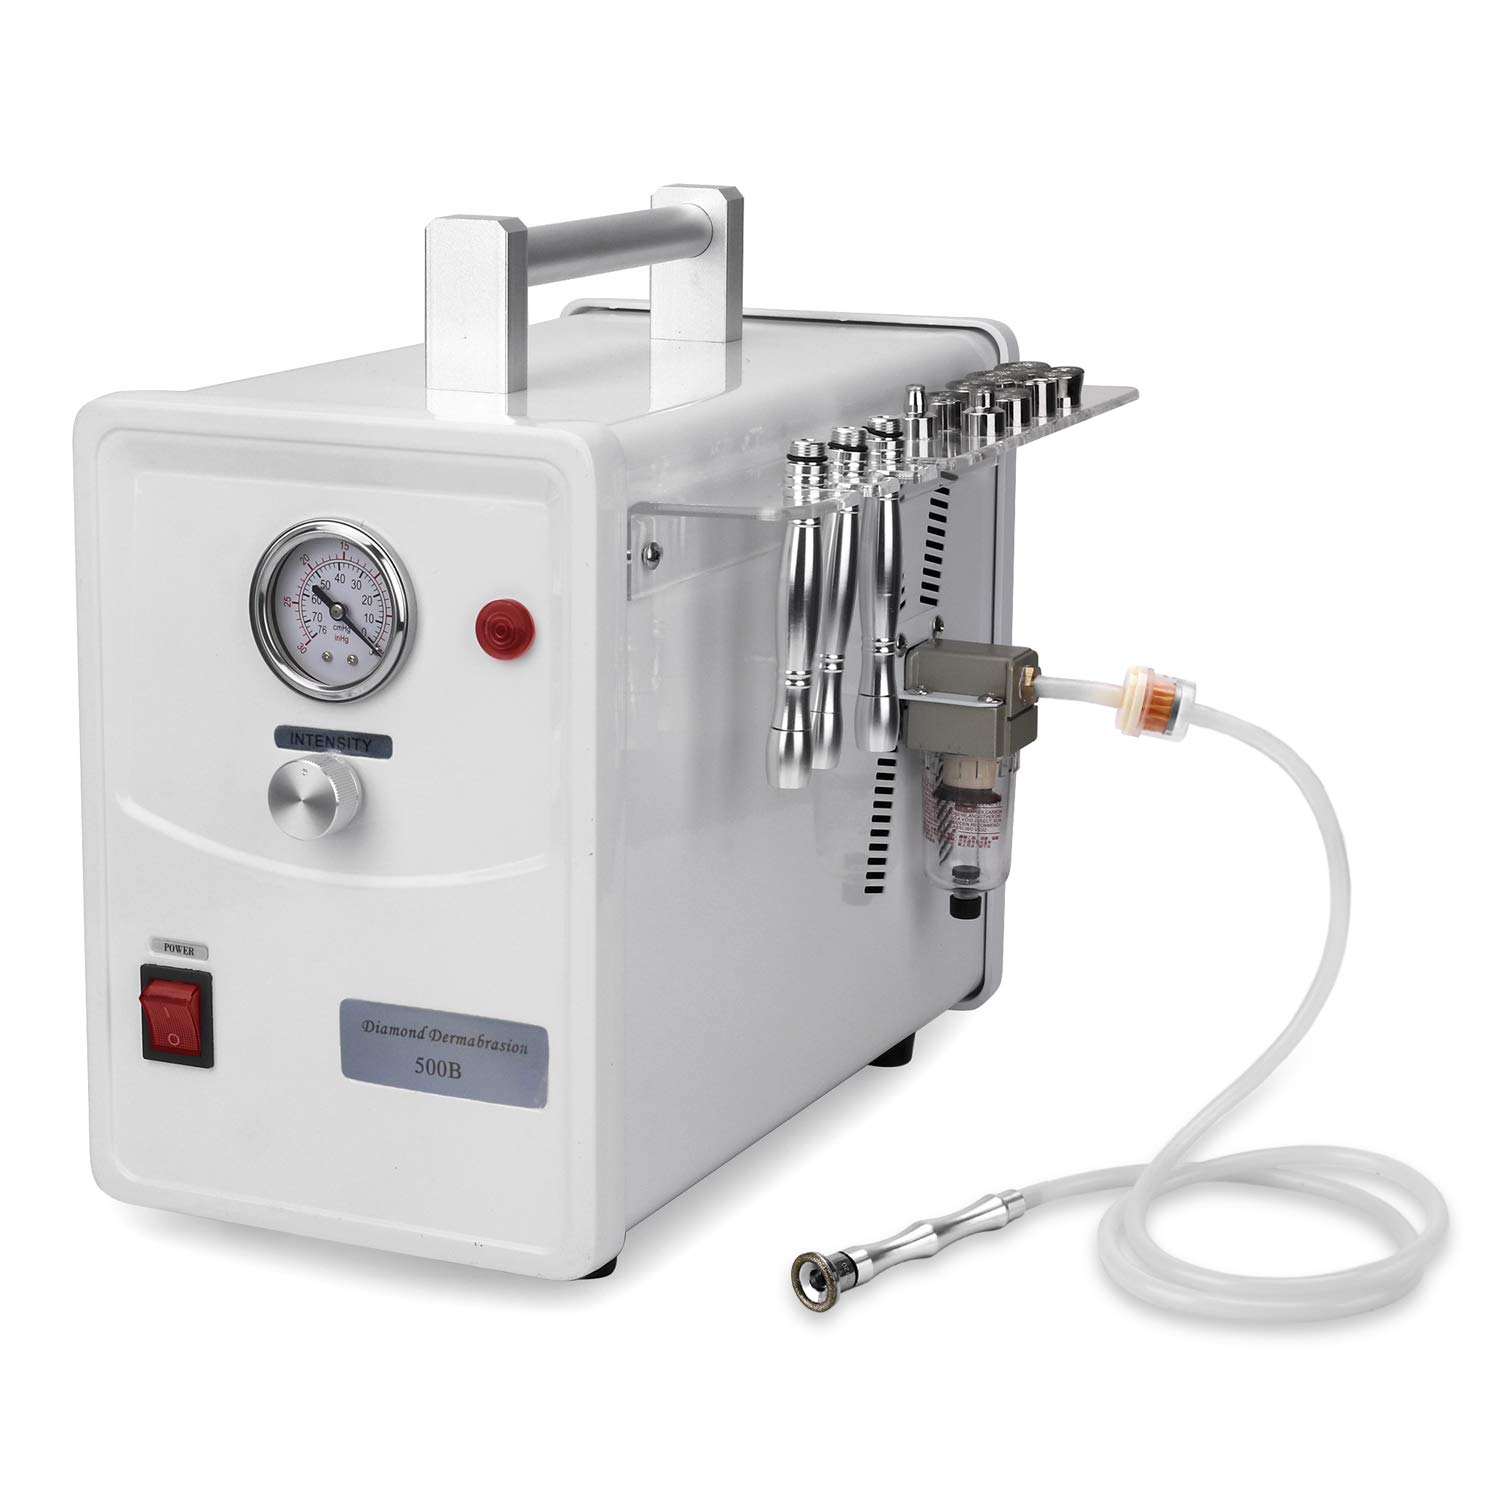 Best Microdermabrasion Machines For Professional Use